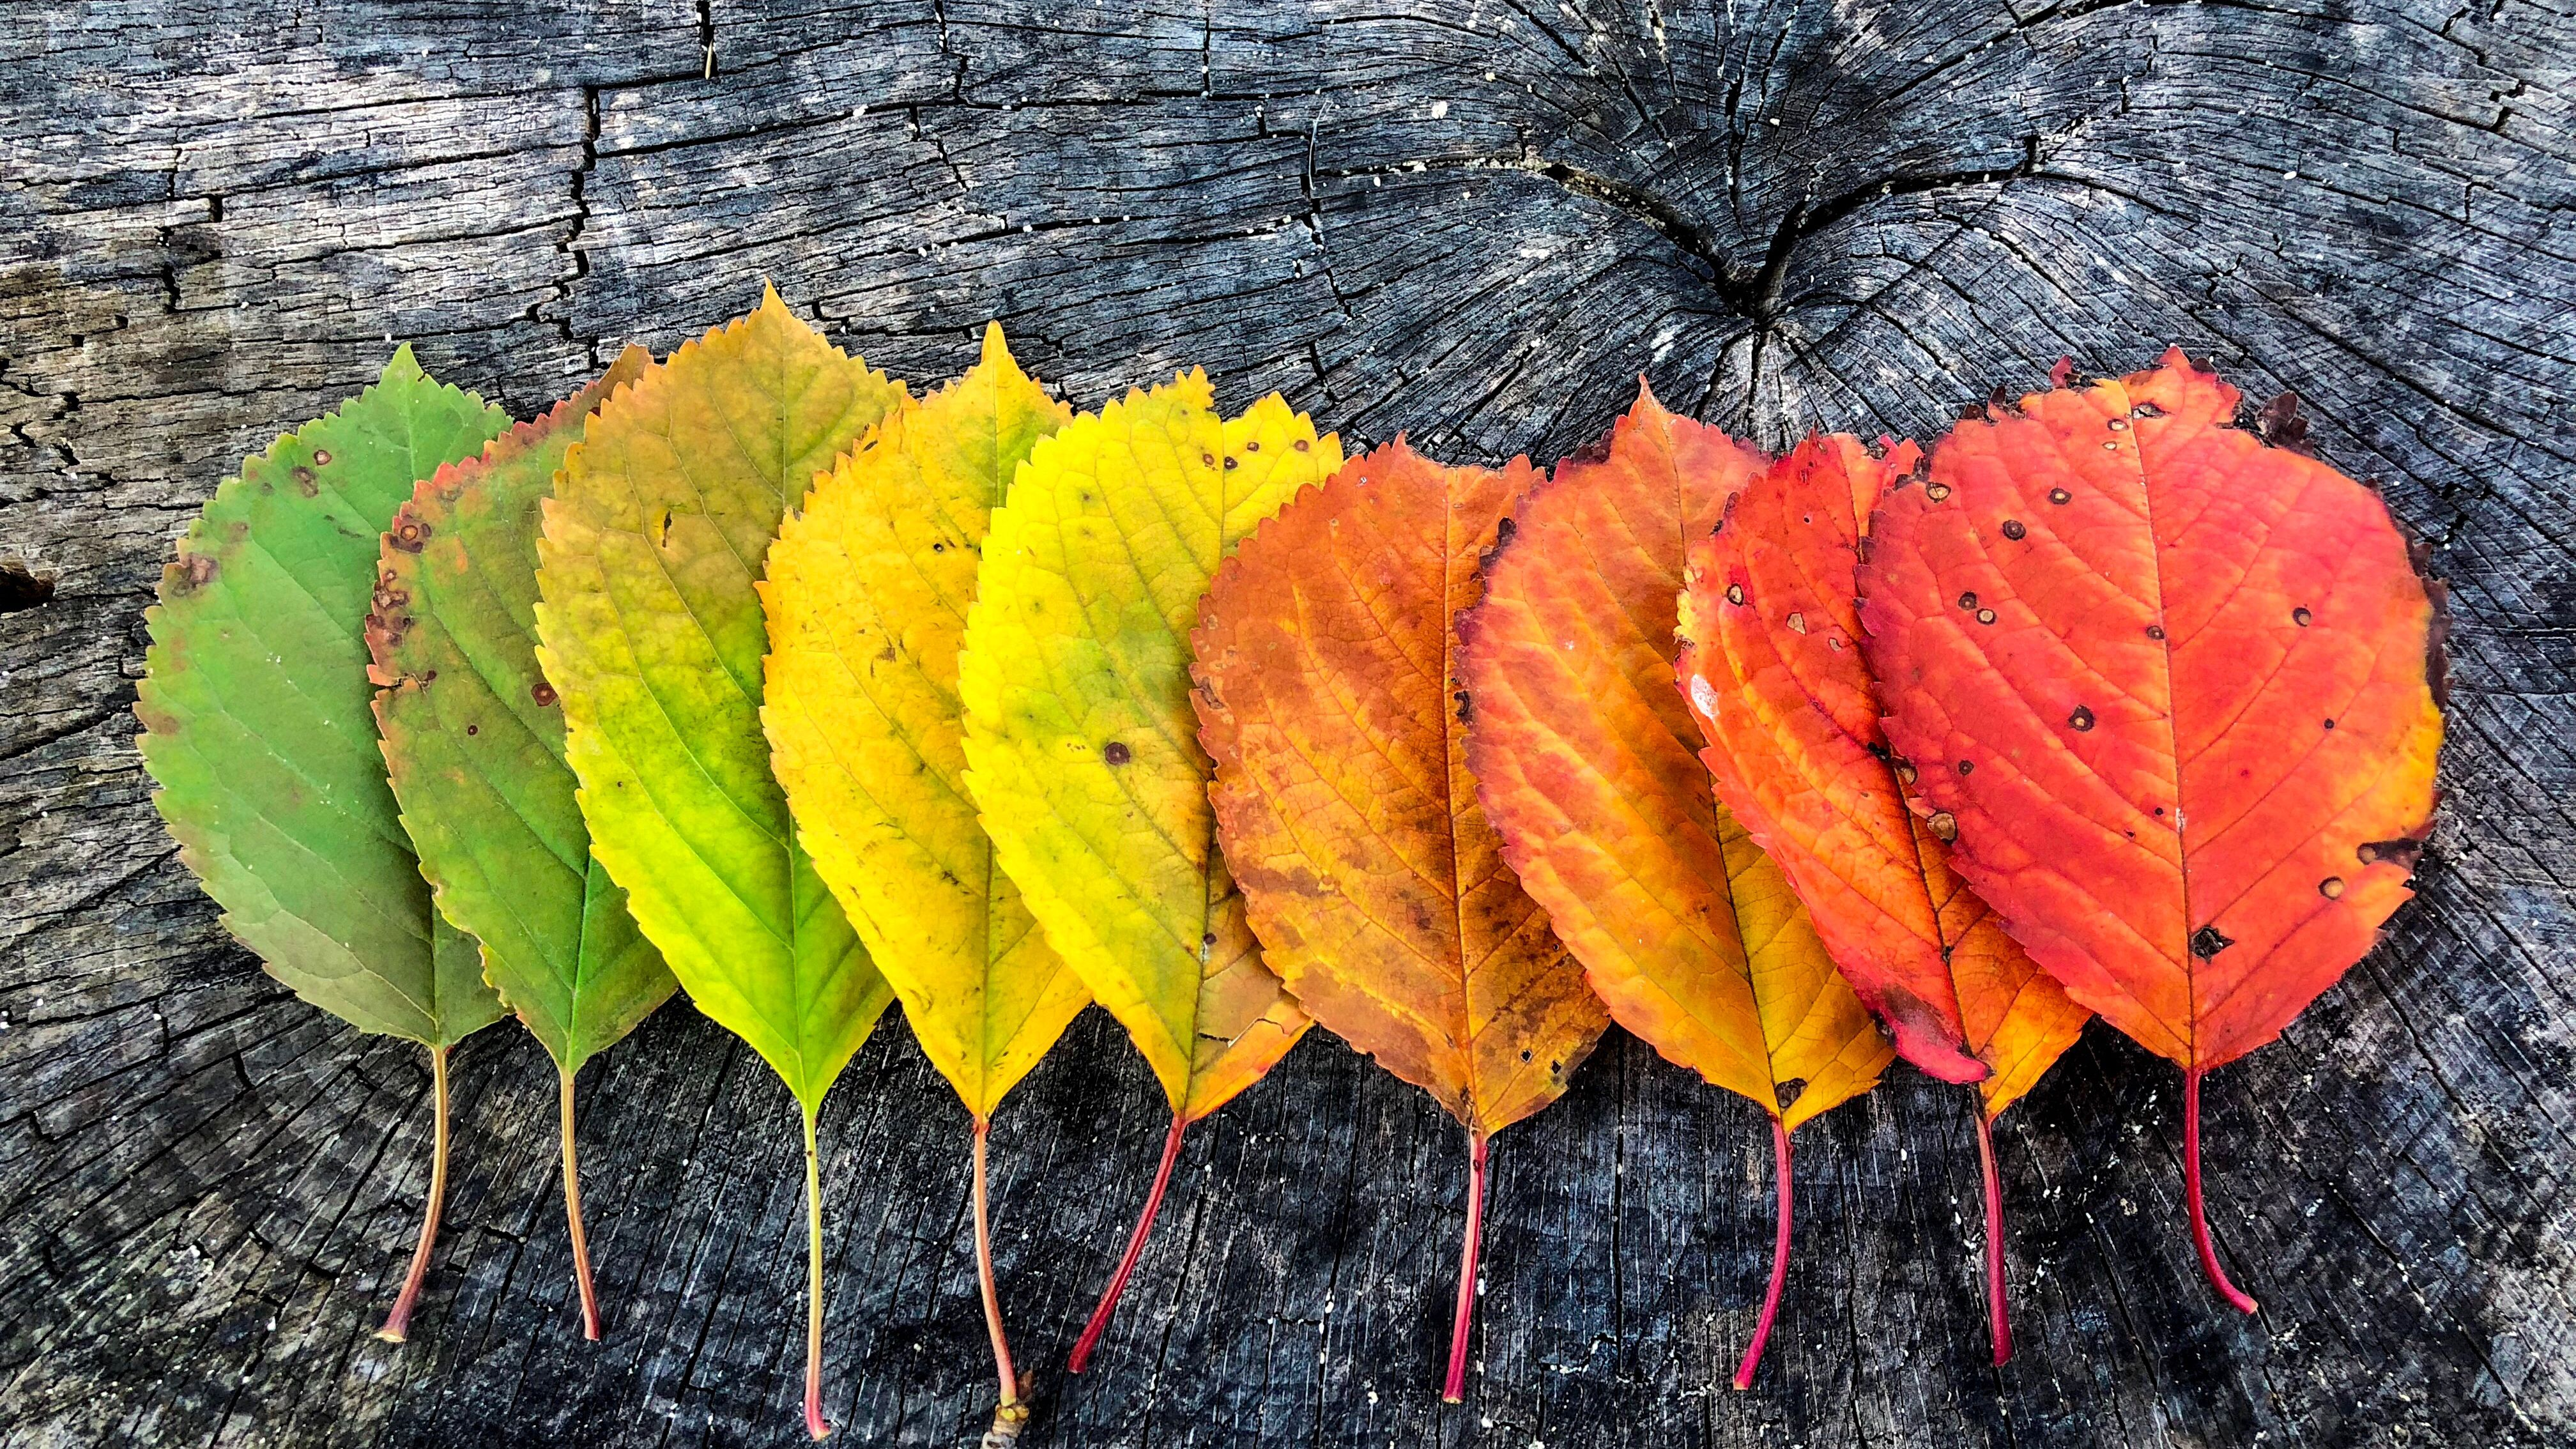 Why Do Leaves Change Color in Autumn?